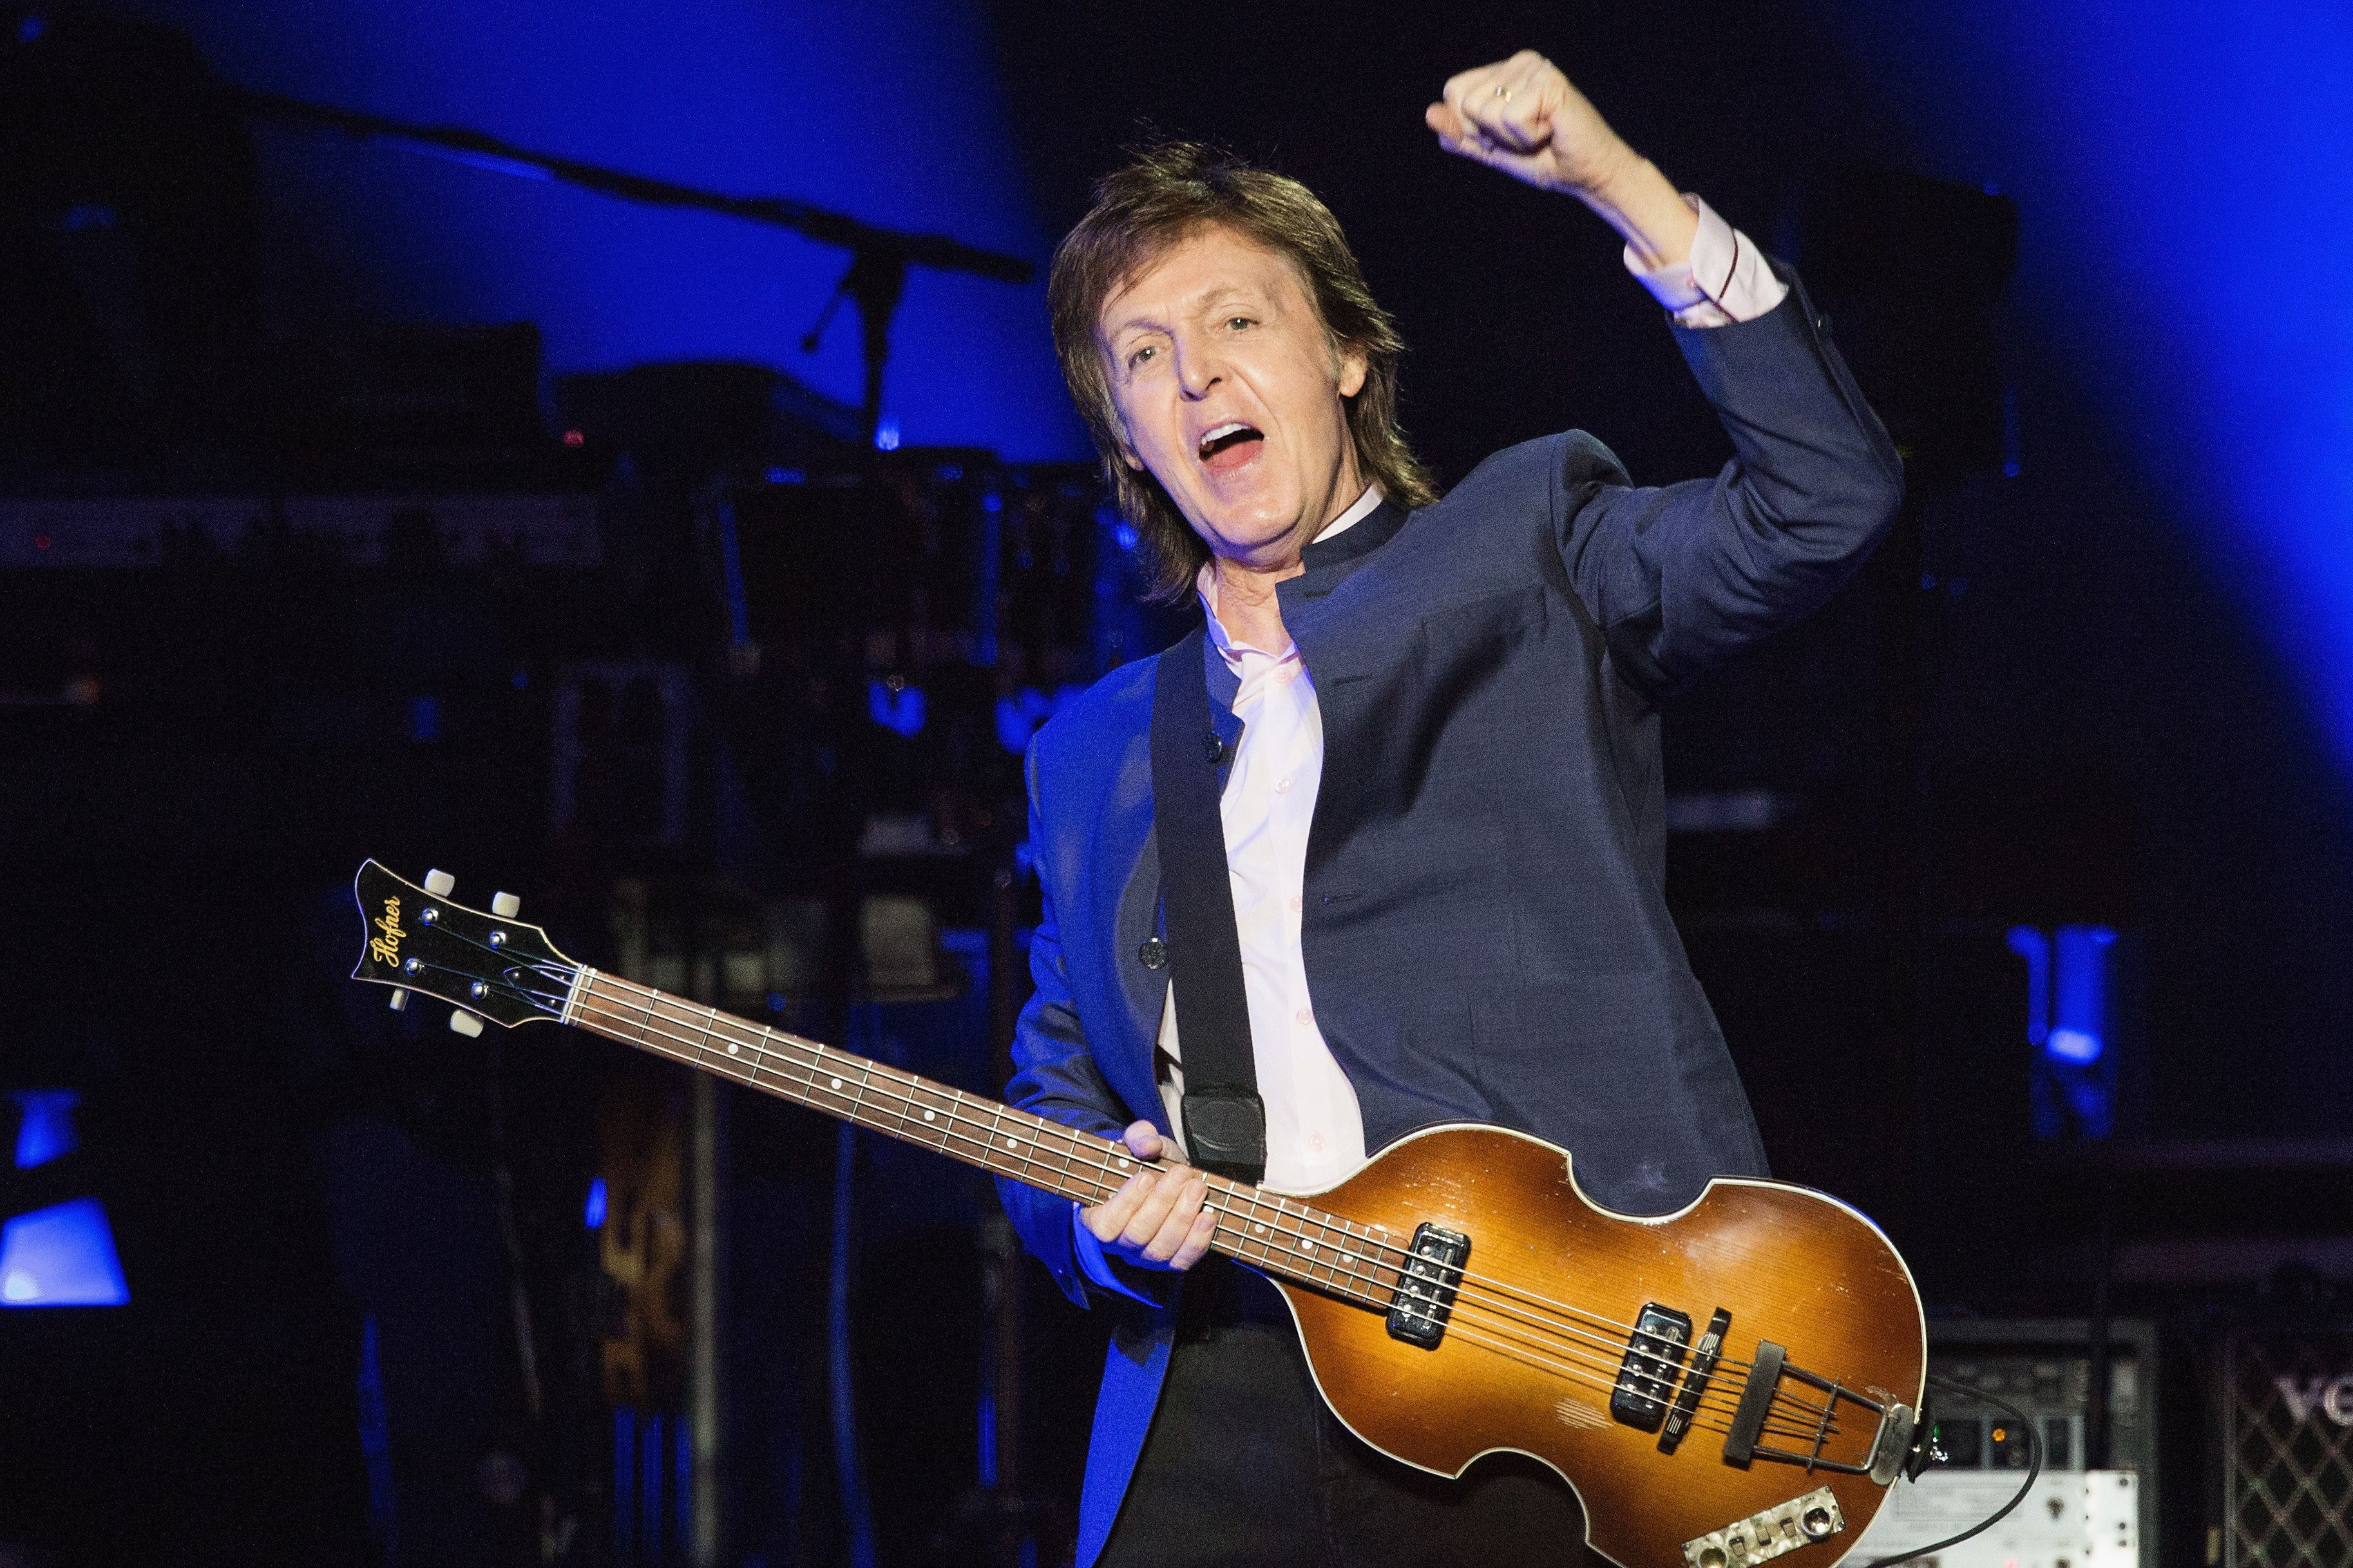 Could Paul McCartney Be Joining 'The